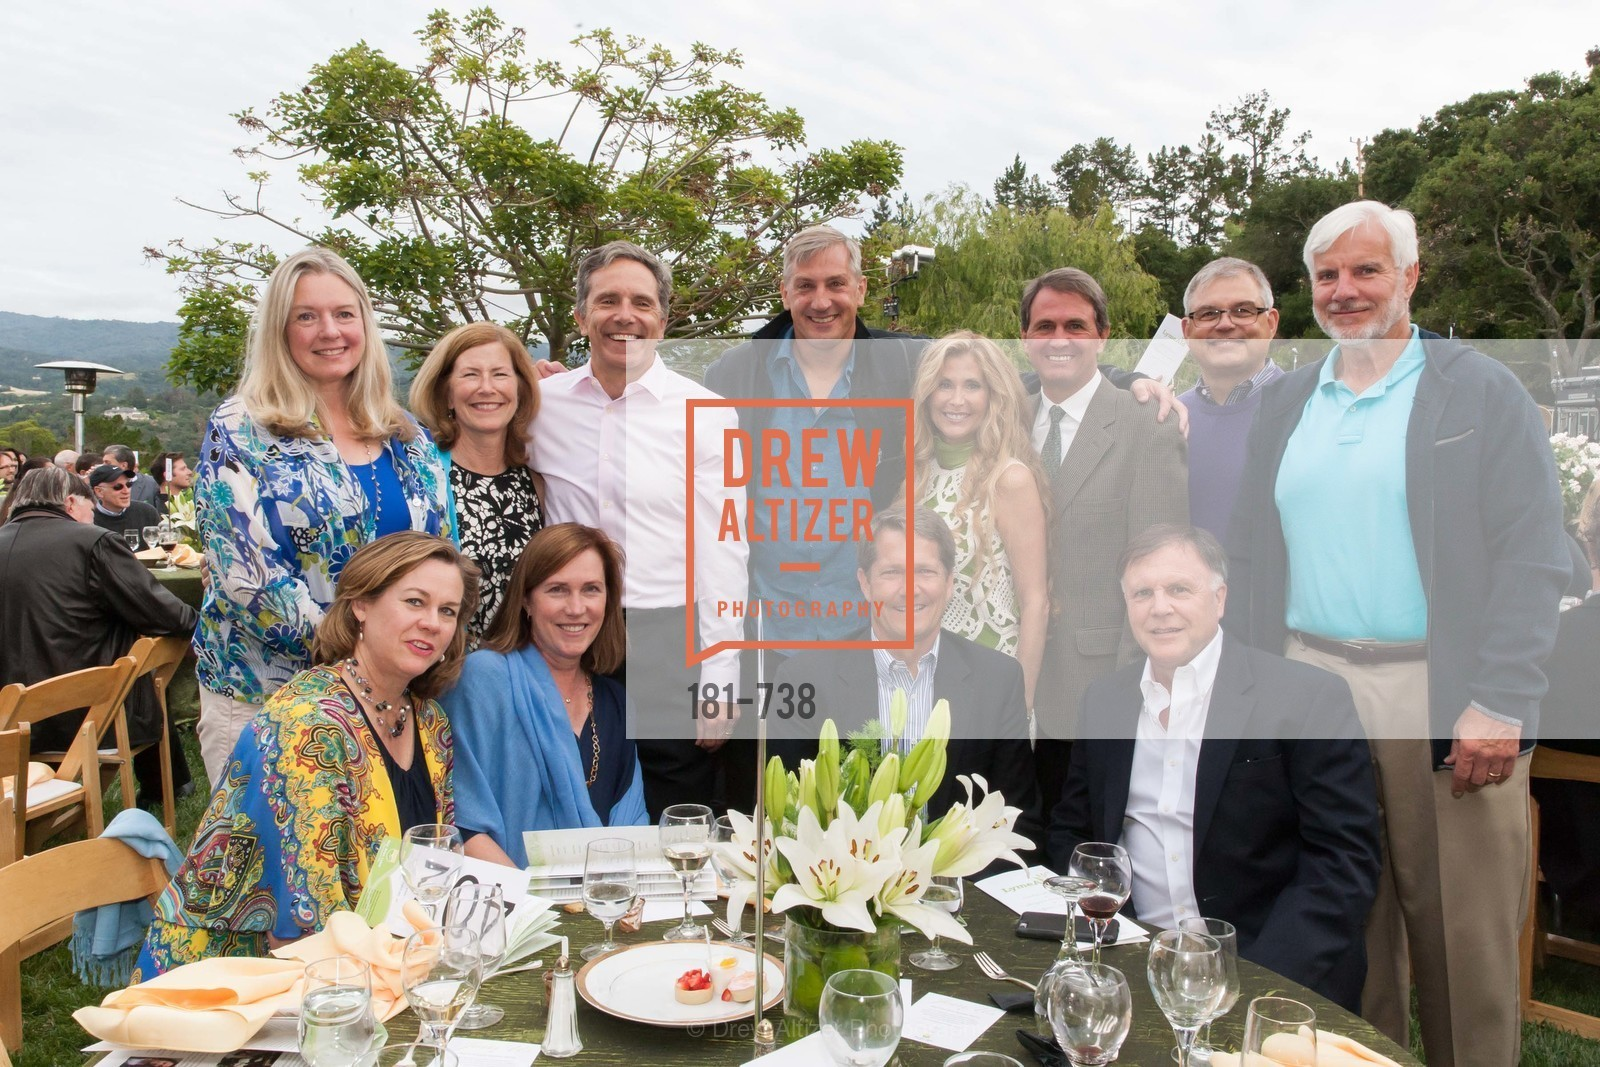 Rhonda Brier, Amy Boyle, Ellen Lucier, Joyn Boyle, Mark Brier, Sherry Cagan, Laird Cagan, Alan DeClerq, Jim Lucier, Steve Howe, LymeAid 2015, US, May 17th, 2015,Drew Altizer, Drew Altizer Photography, full-service agency, private events, San Francisco photographer, photographer california